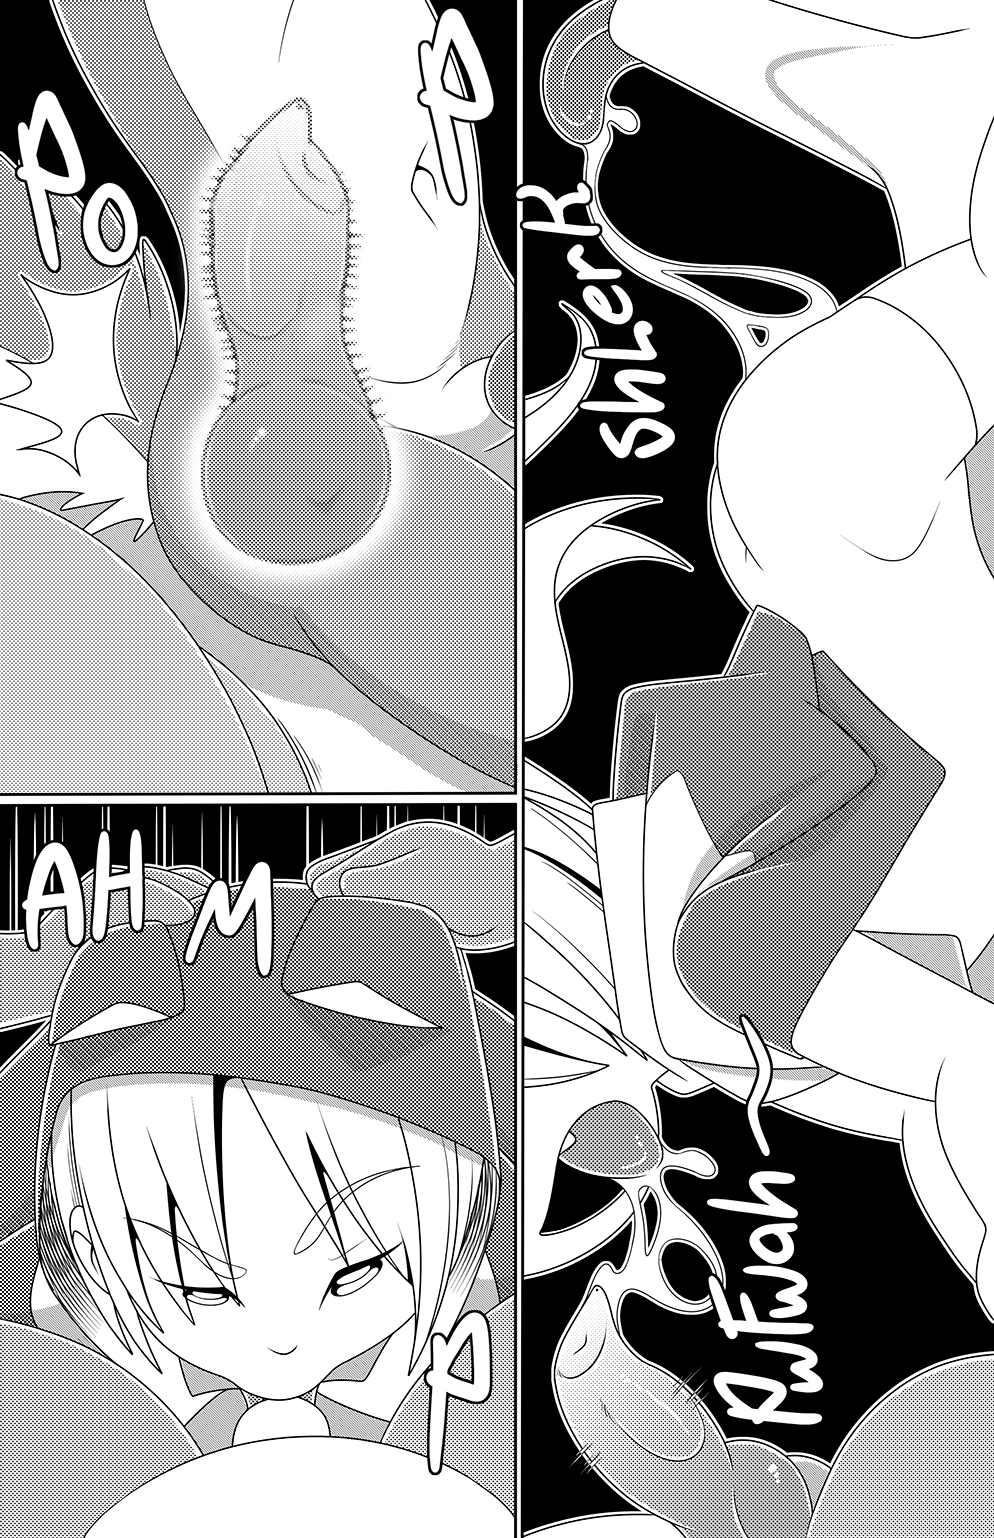 Knotty Pup porn comics Oral sex, Anal Sex, Bestiality, Blowjob, Cum Swallow, Double Penetration, Furry, Group Sex, Lolicon, Stockings, Straight, X-Ray